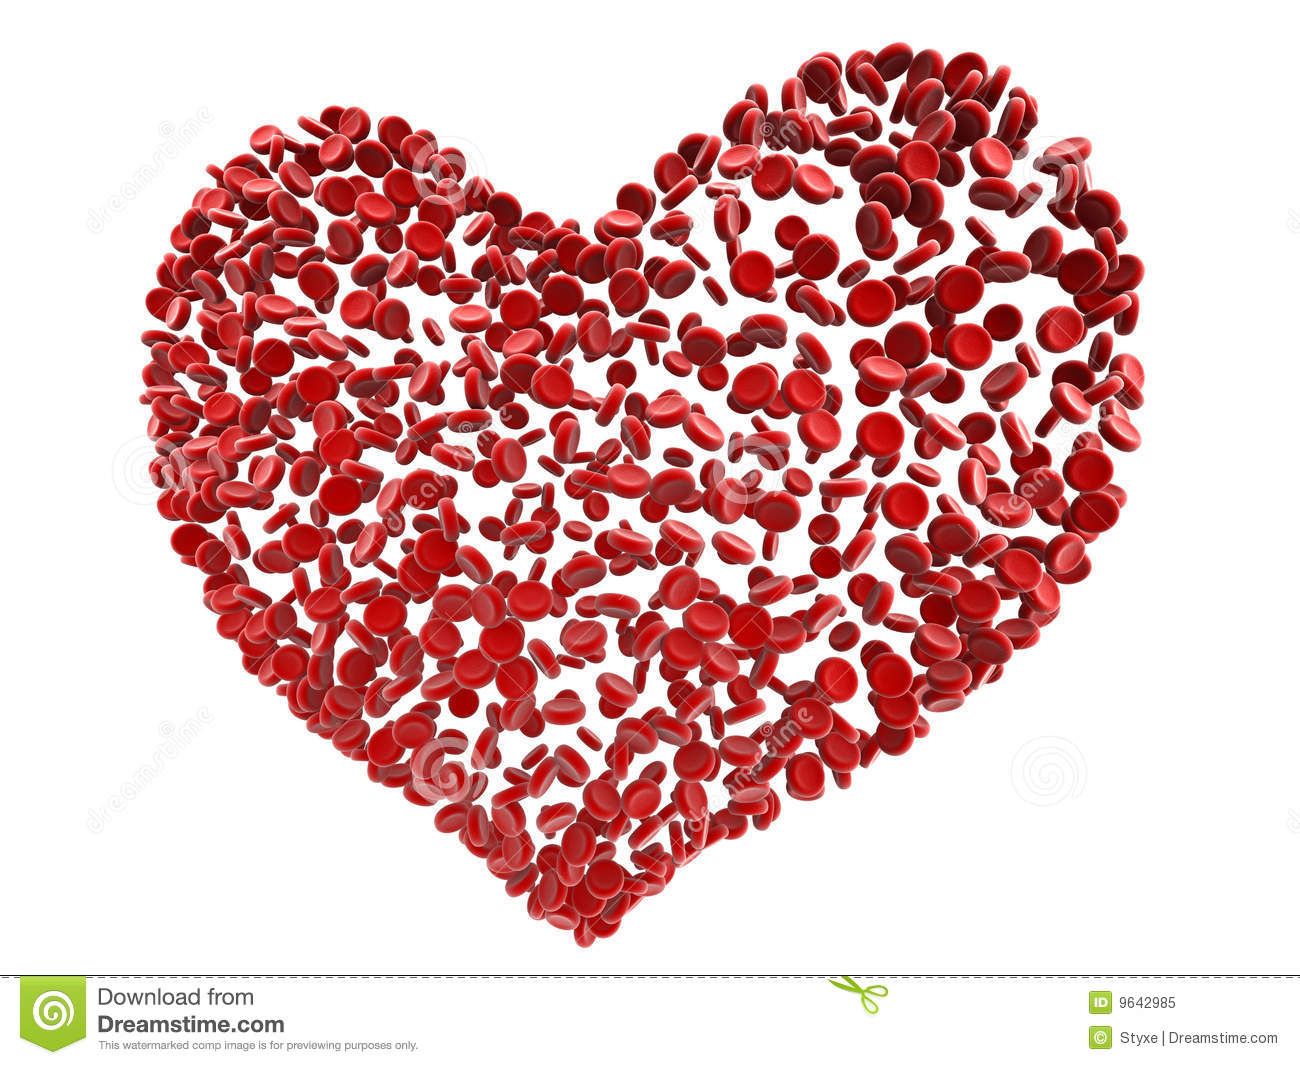 Red Heart Blood Cells Royalty Free Stock Photo - Image